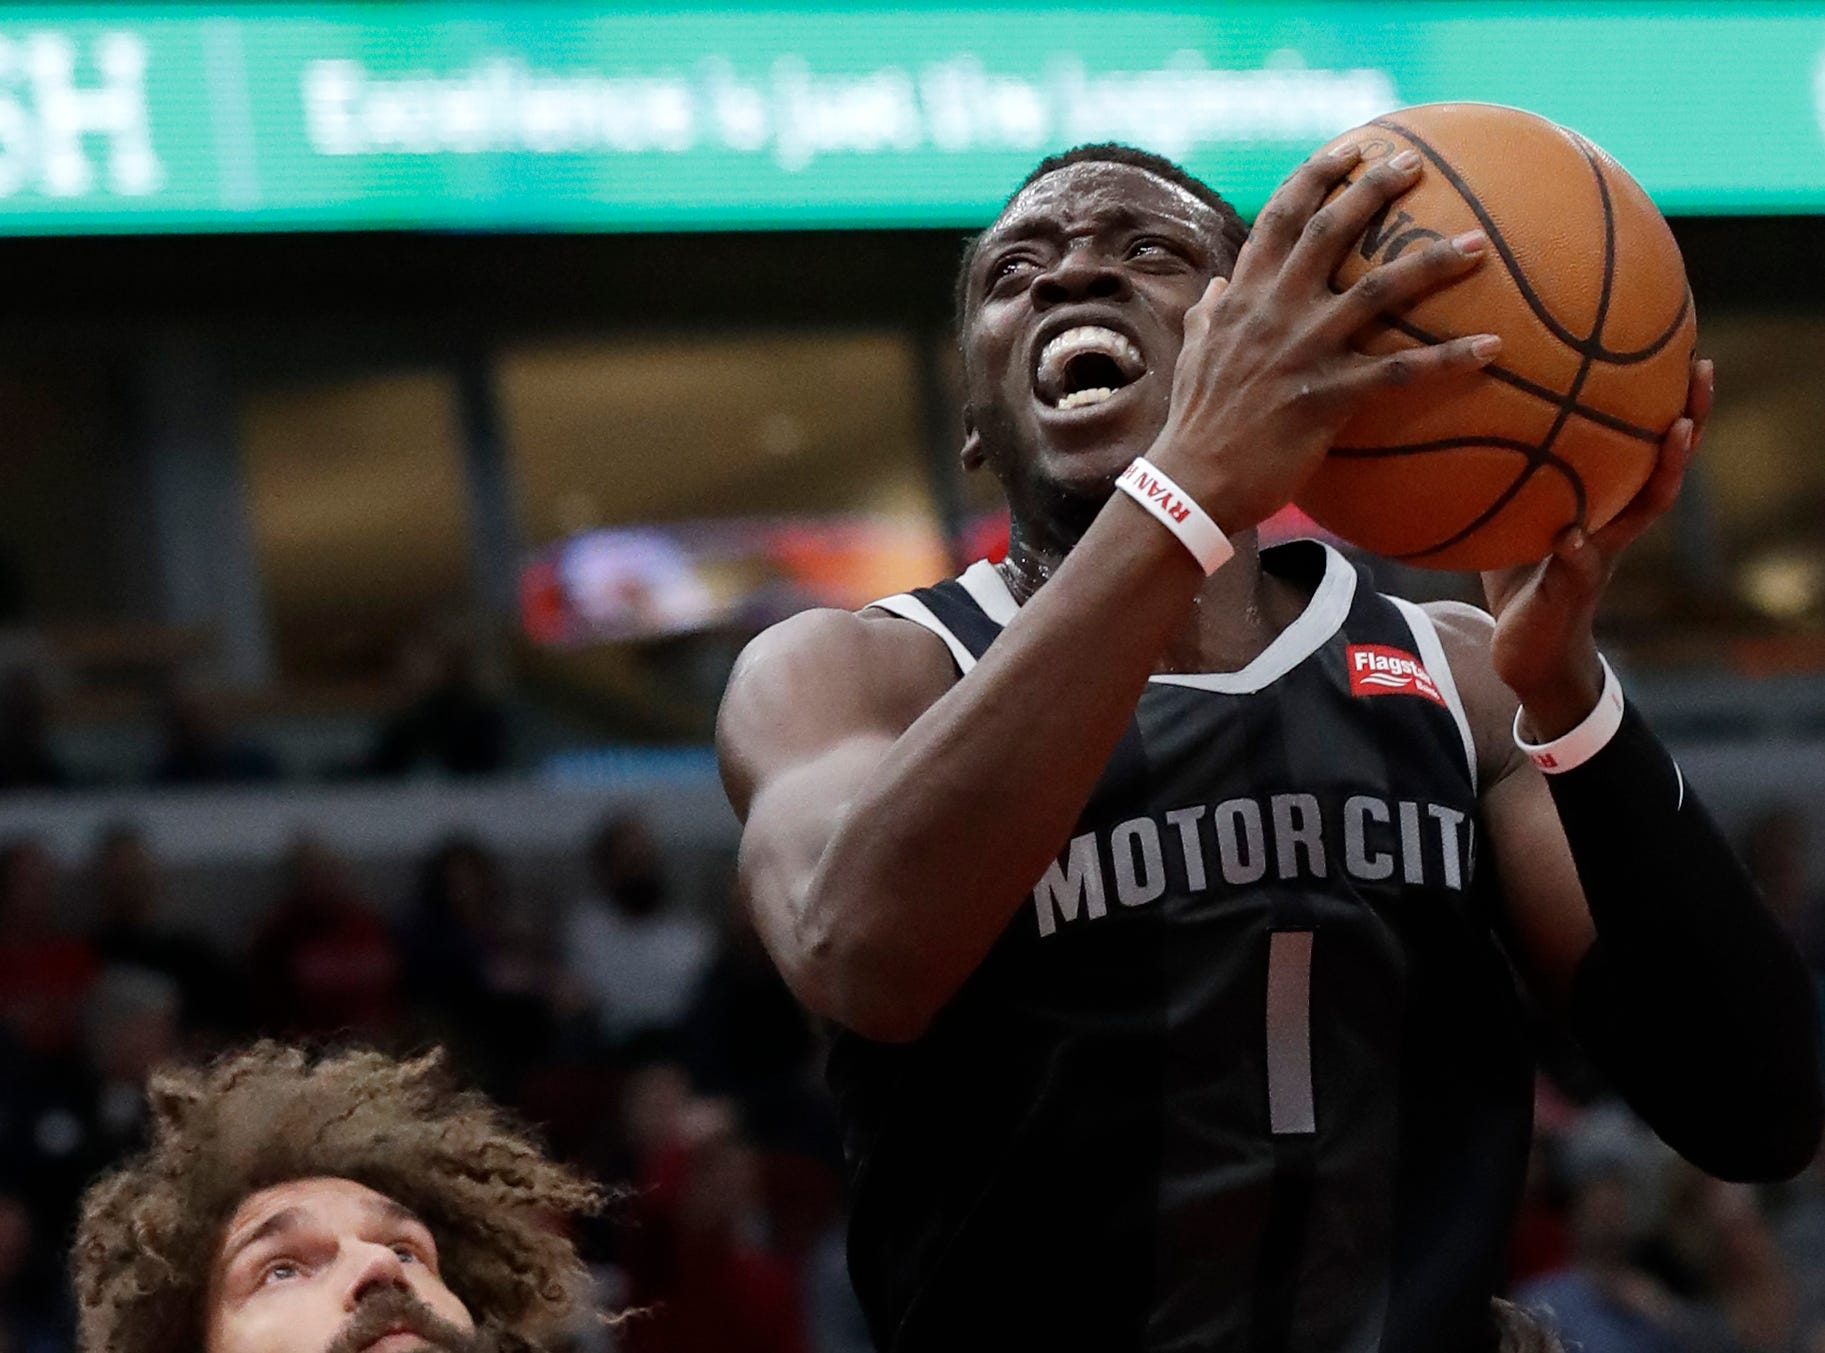 Detroit Pistons guard Reggie Jackson (1) drives to the basket against Chicago Bulls center Robin Lopez, left, and guard Ryan Arcidiacono during the first half of an NBA basketball game Friday, March 8, 2019, in Chicago.